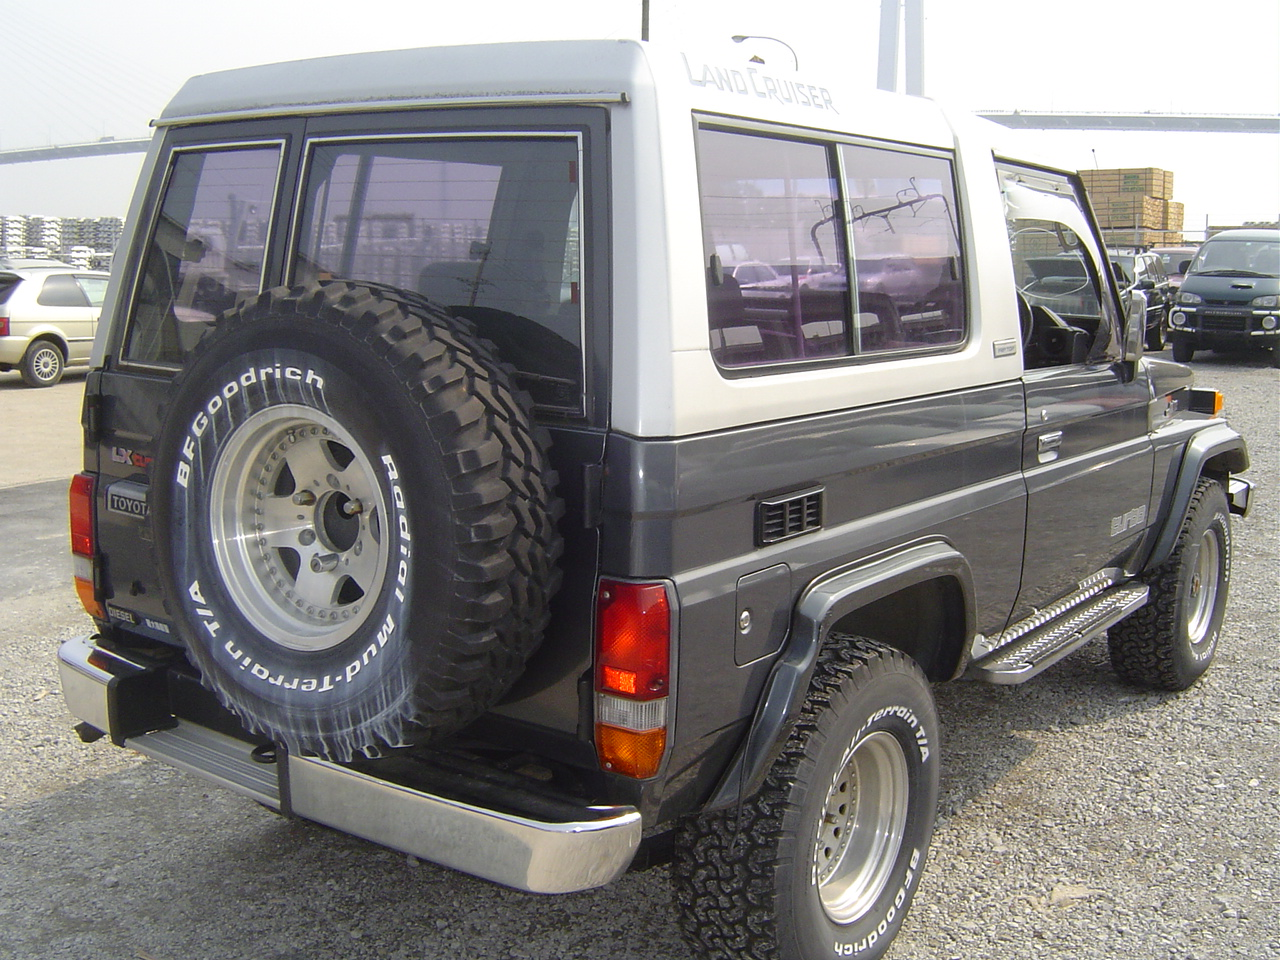 1989 Toyota Landcruiser BJ74 4WD rear